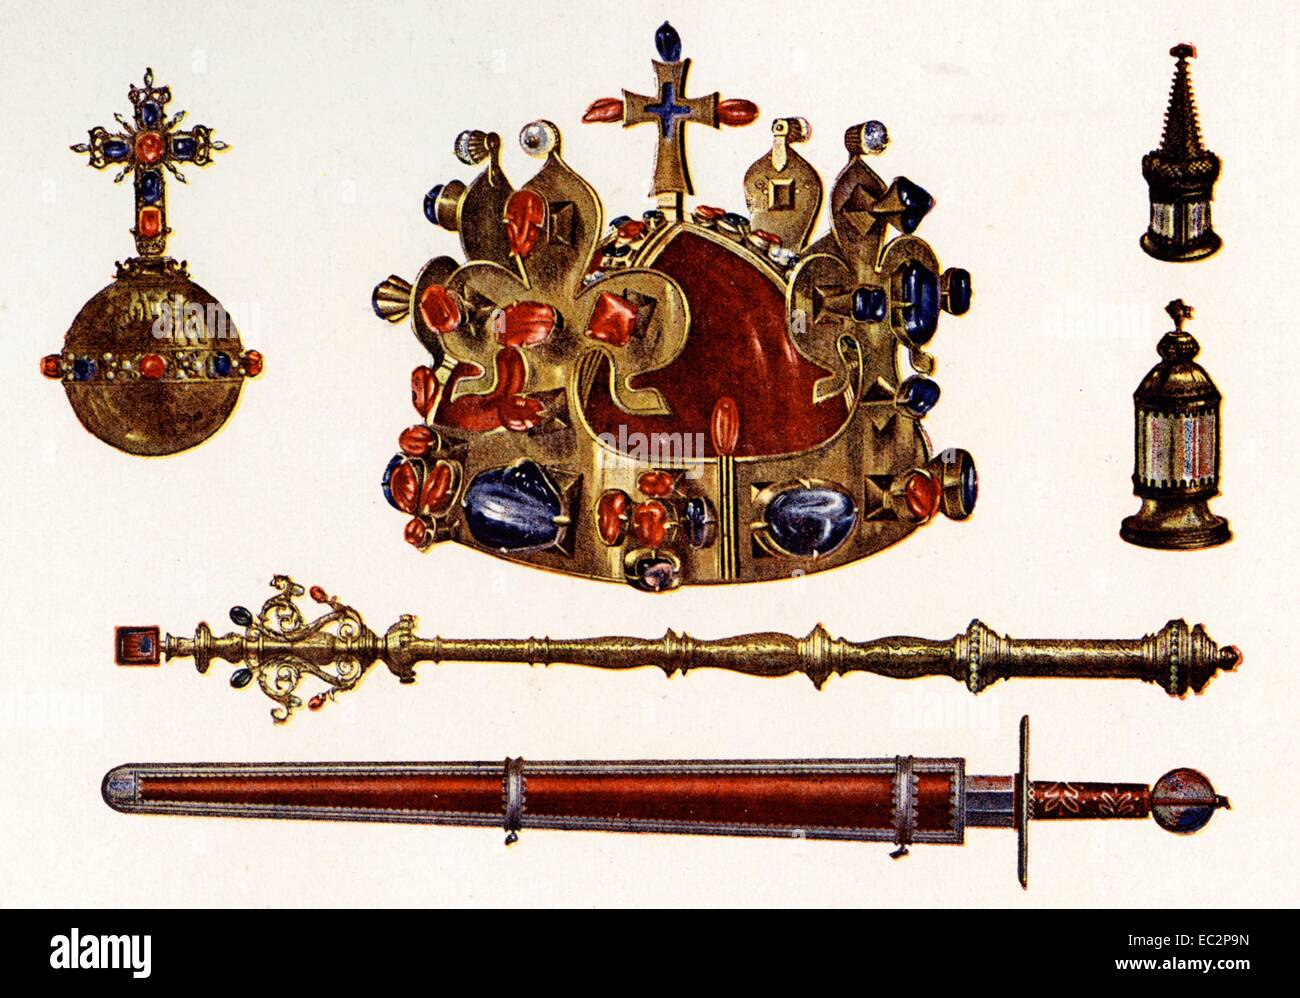 The Bohemian Crown Jewels, sometimes called the Czech Crown Jewels - Stock Image